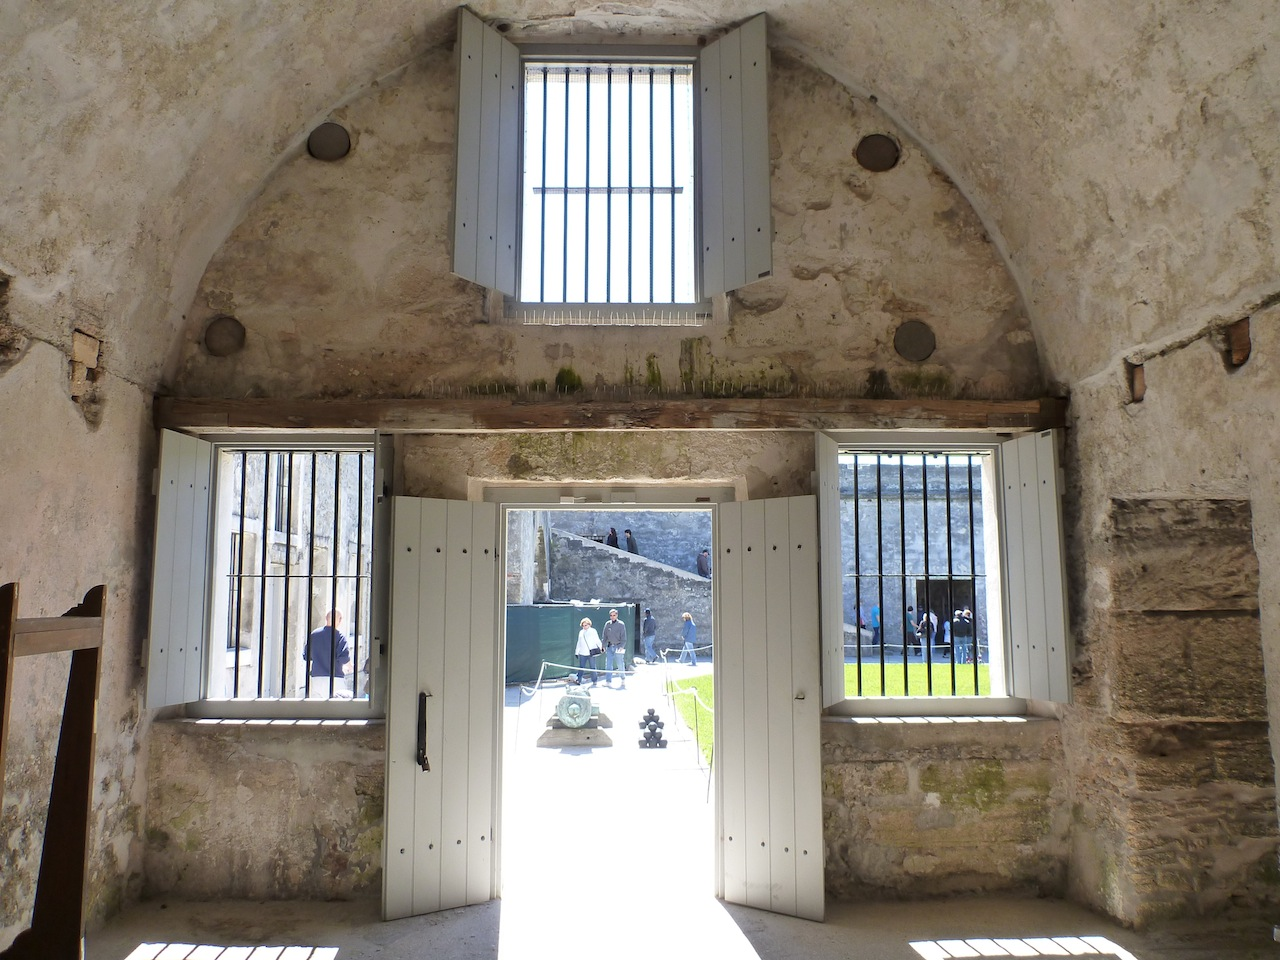 A Room In The Castillo de San Marcos, Looking Out Into The Courtyard